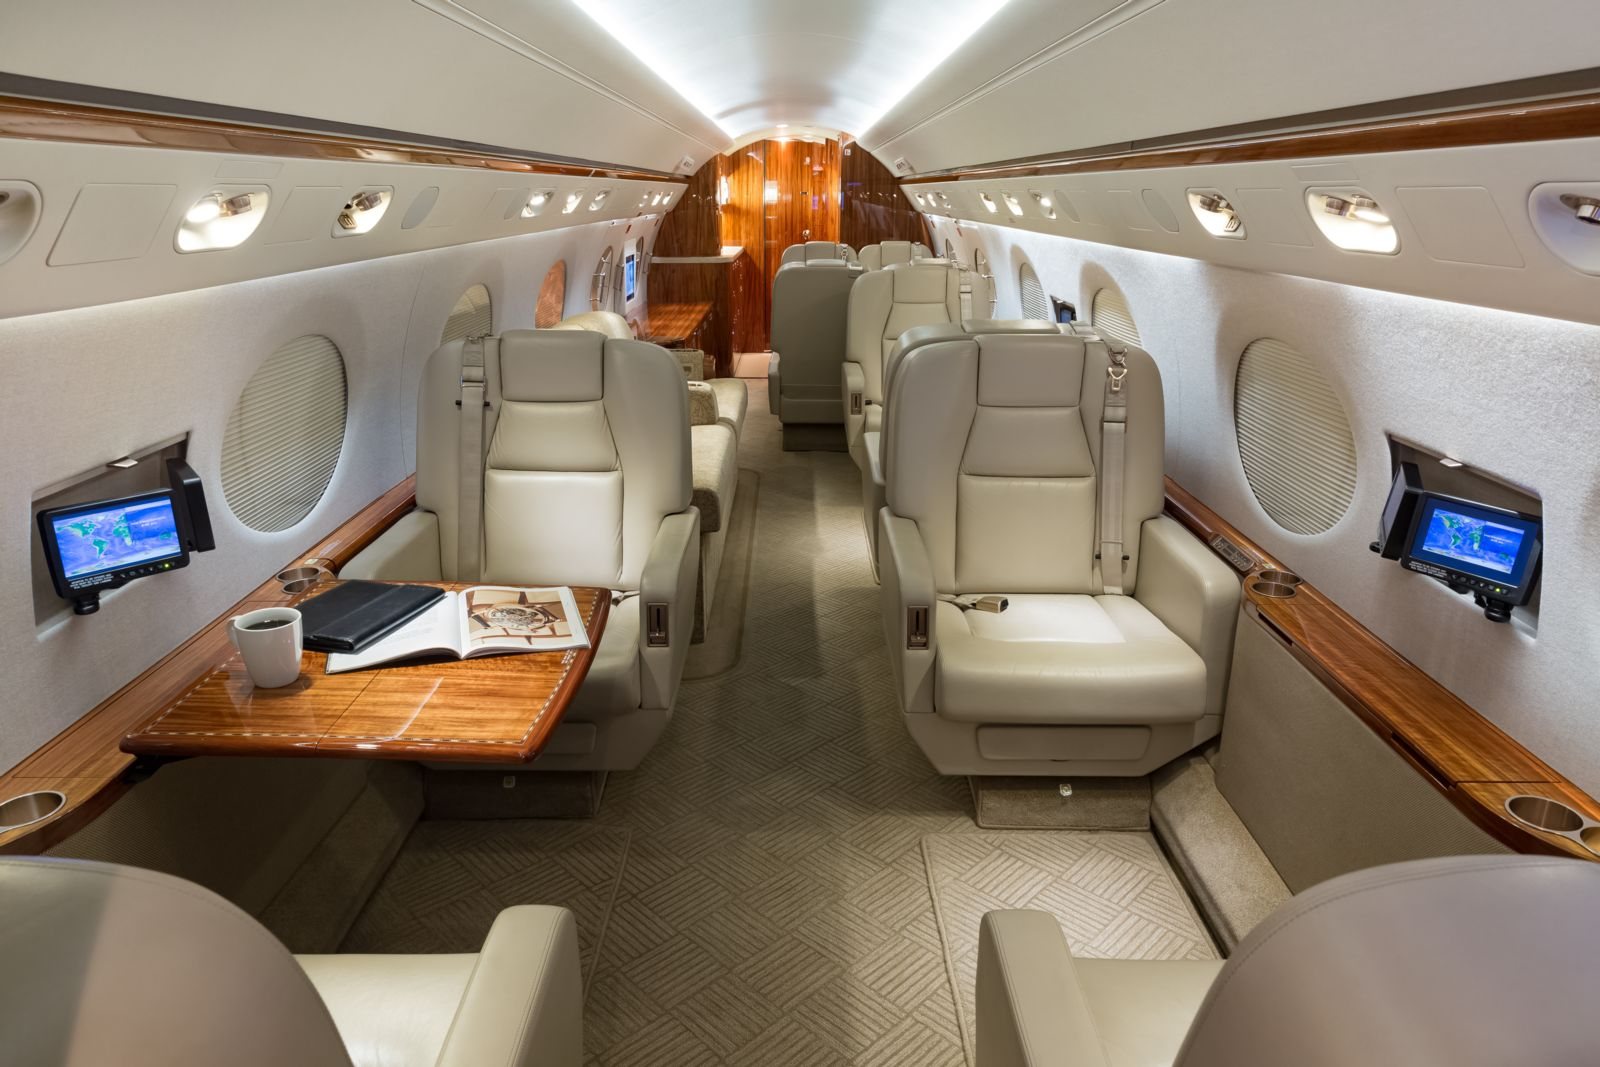 Gulfstream G450  S/N 4127 for sale | gallery image: /userfiles/images/G450_4127/fwd%20aft.jpg